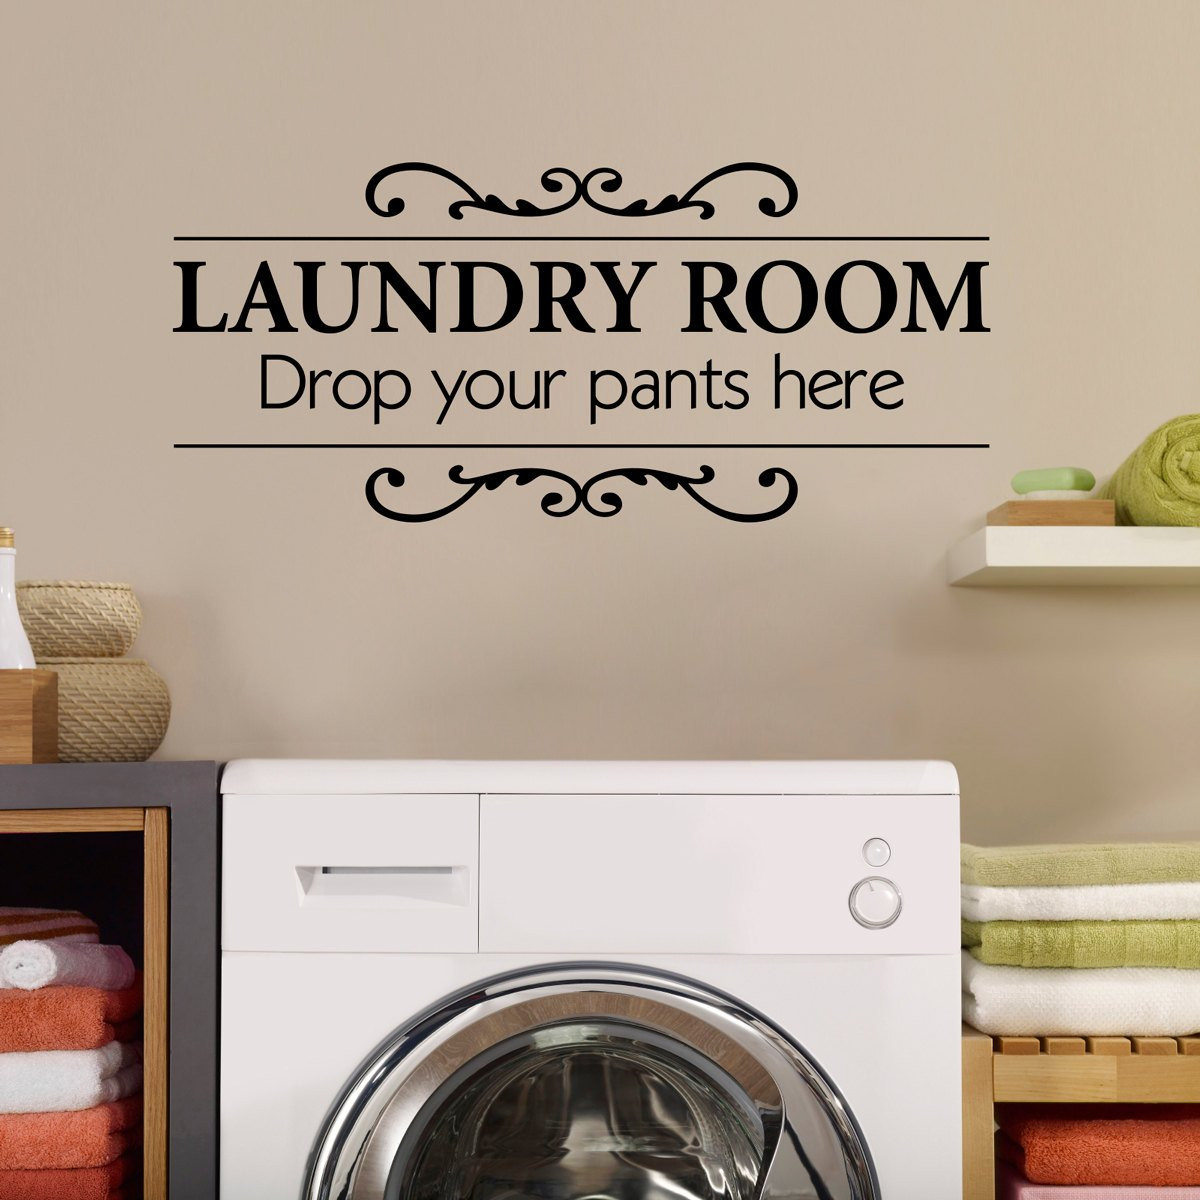 Best ideas about Laundry Room Decals . Save or Pin Laundry Room Wall Decal Drop your pants here Utility Room Now.